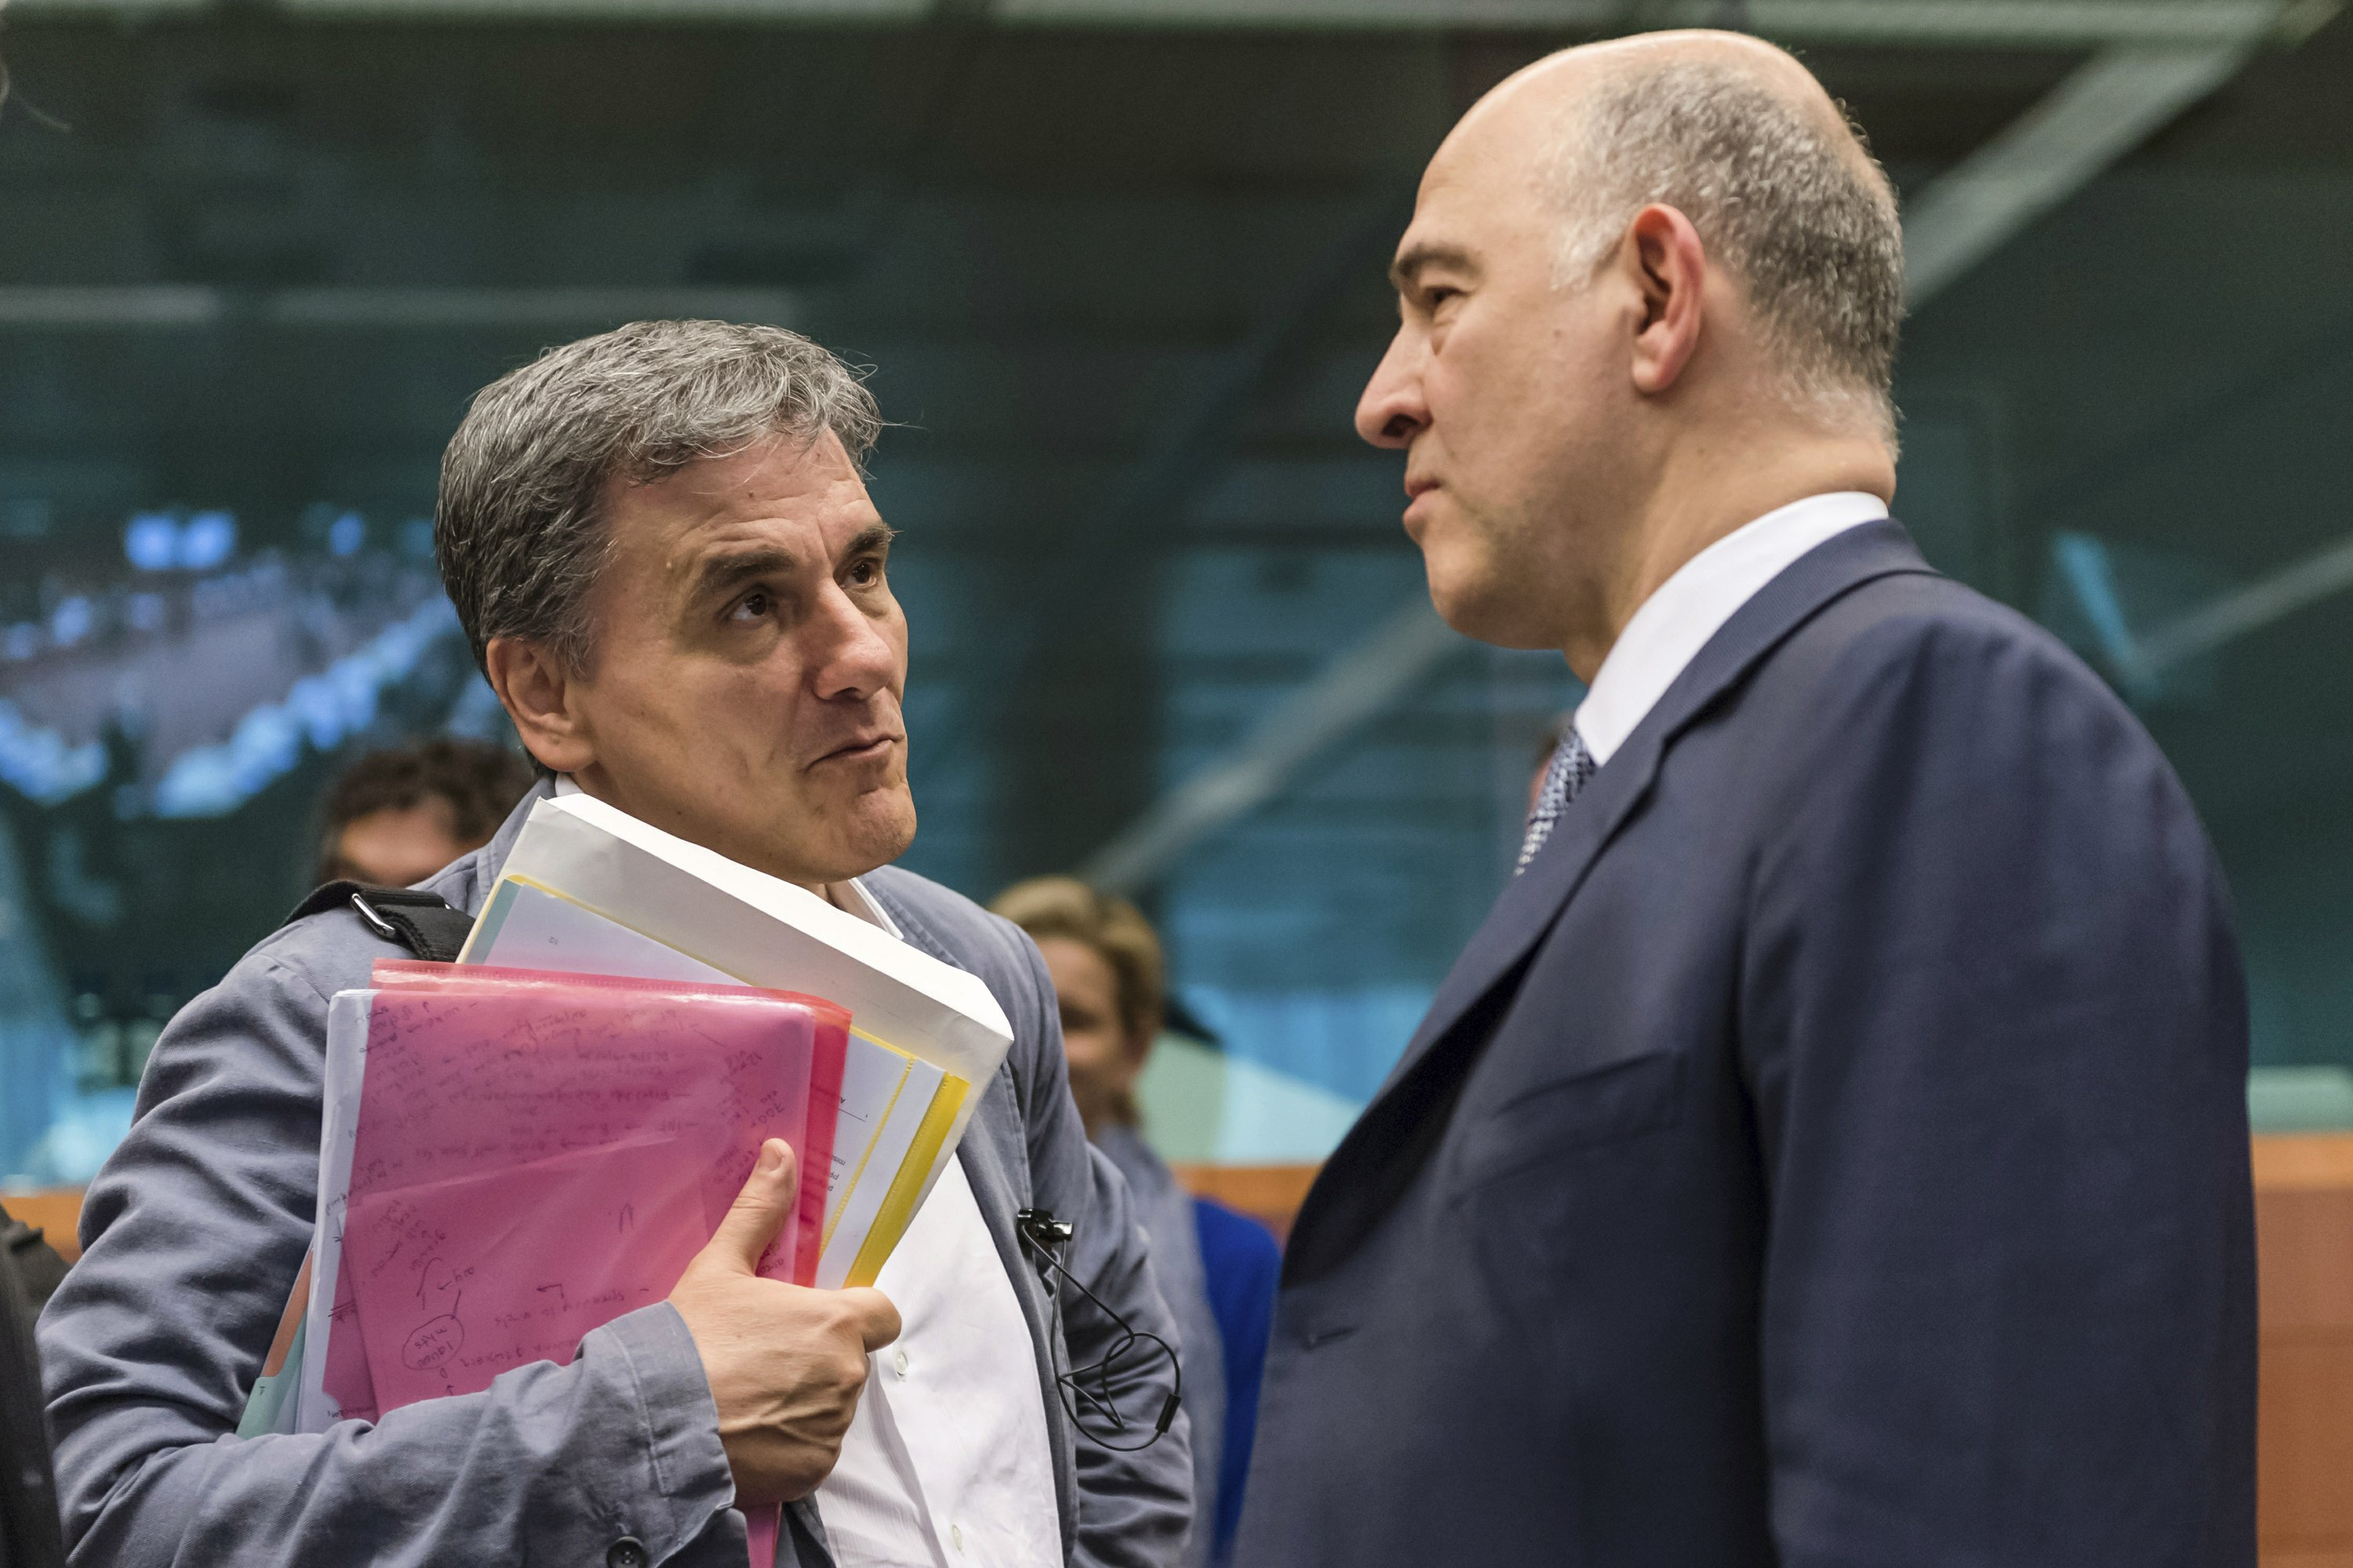 Greece falls short in efforts to secure deal with creditors